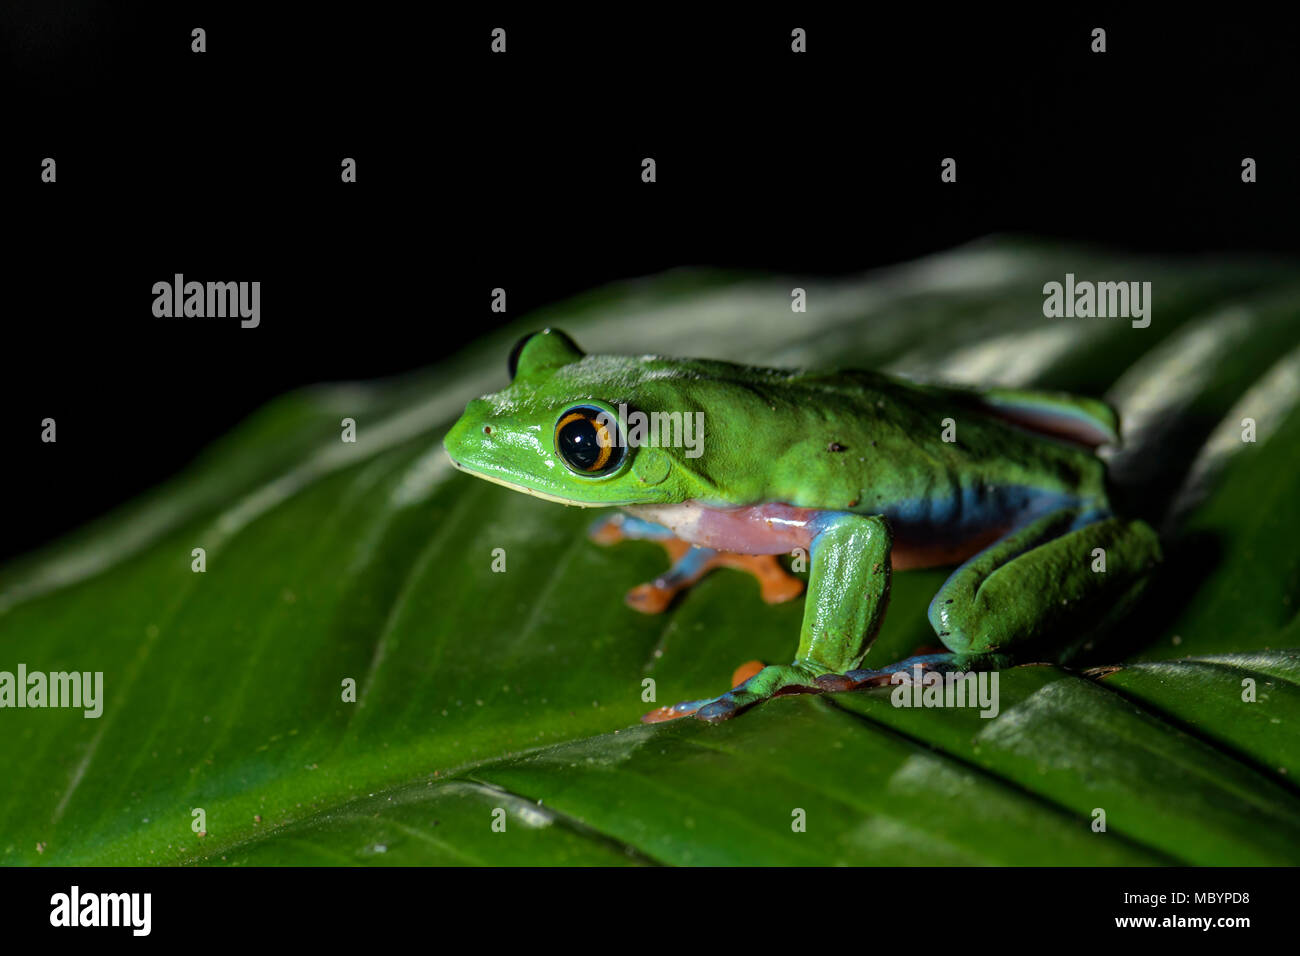 Blue-sided Tree-frog - Agalychnis annae, night picture of beautiful colorful endangered from from Central America forests, Costa Rica. - Stock Image